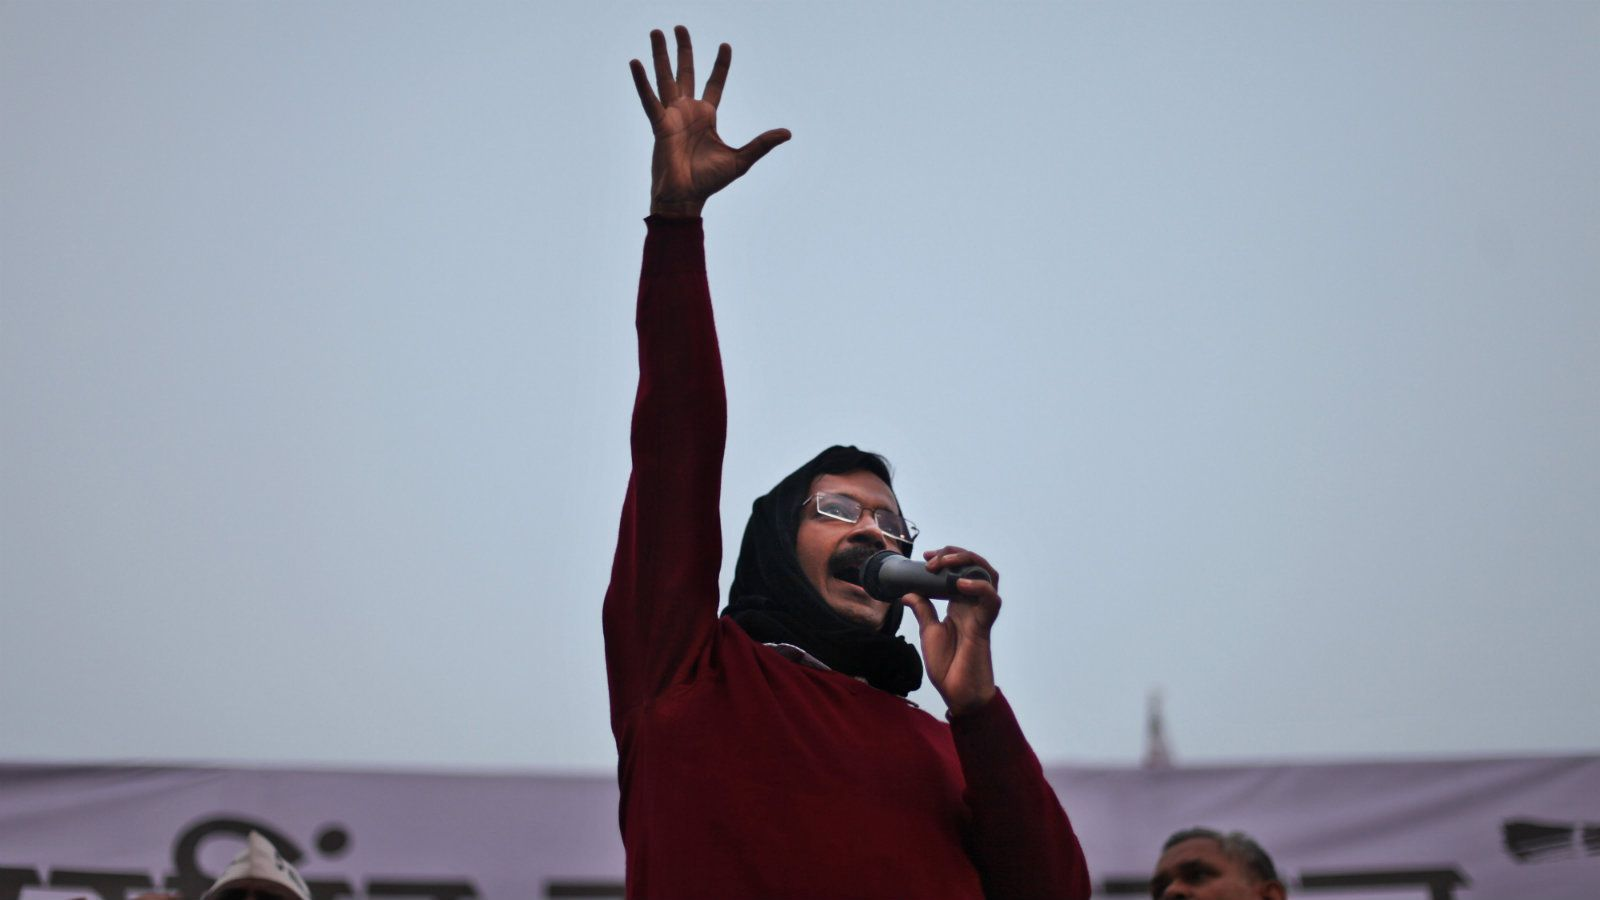 Aam Aadmi Party, or Common Man Party, leader Arvind Kejriwal addresses an election campaign rally in New Delhi, India, Tuesday, Feb. 3, 2015. Delhi will go to the polls on Feb. 7.